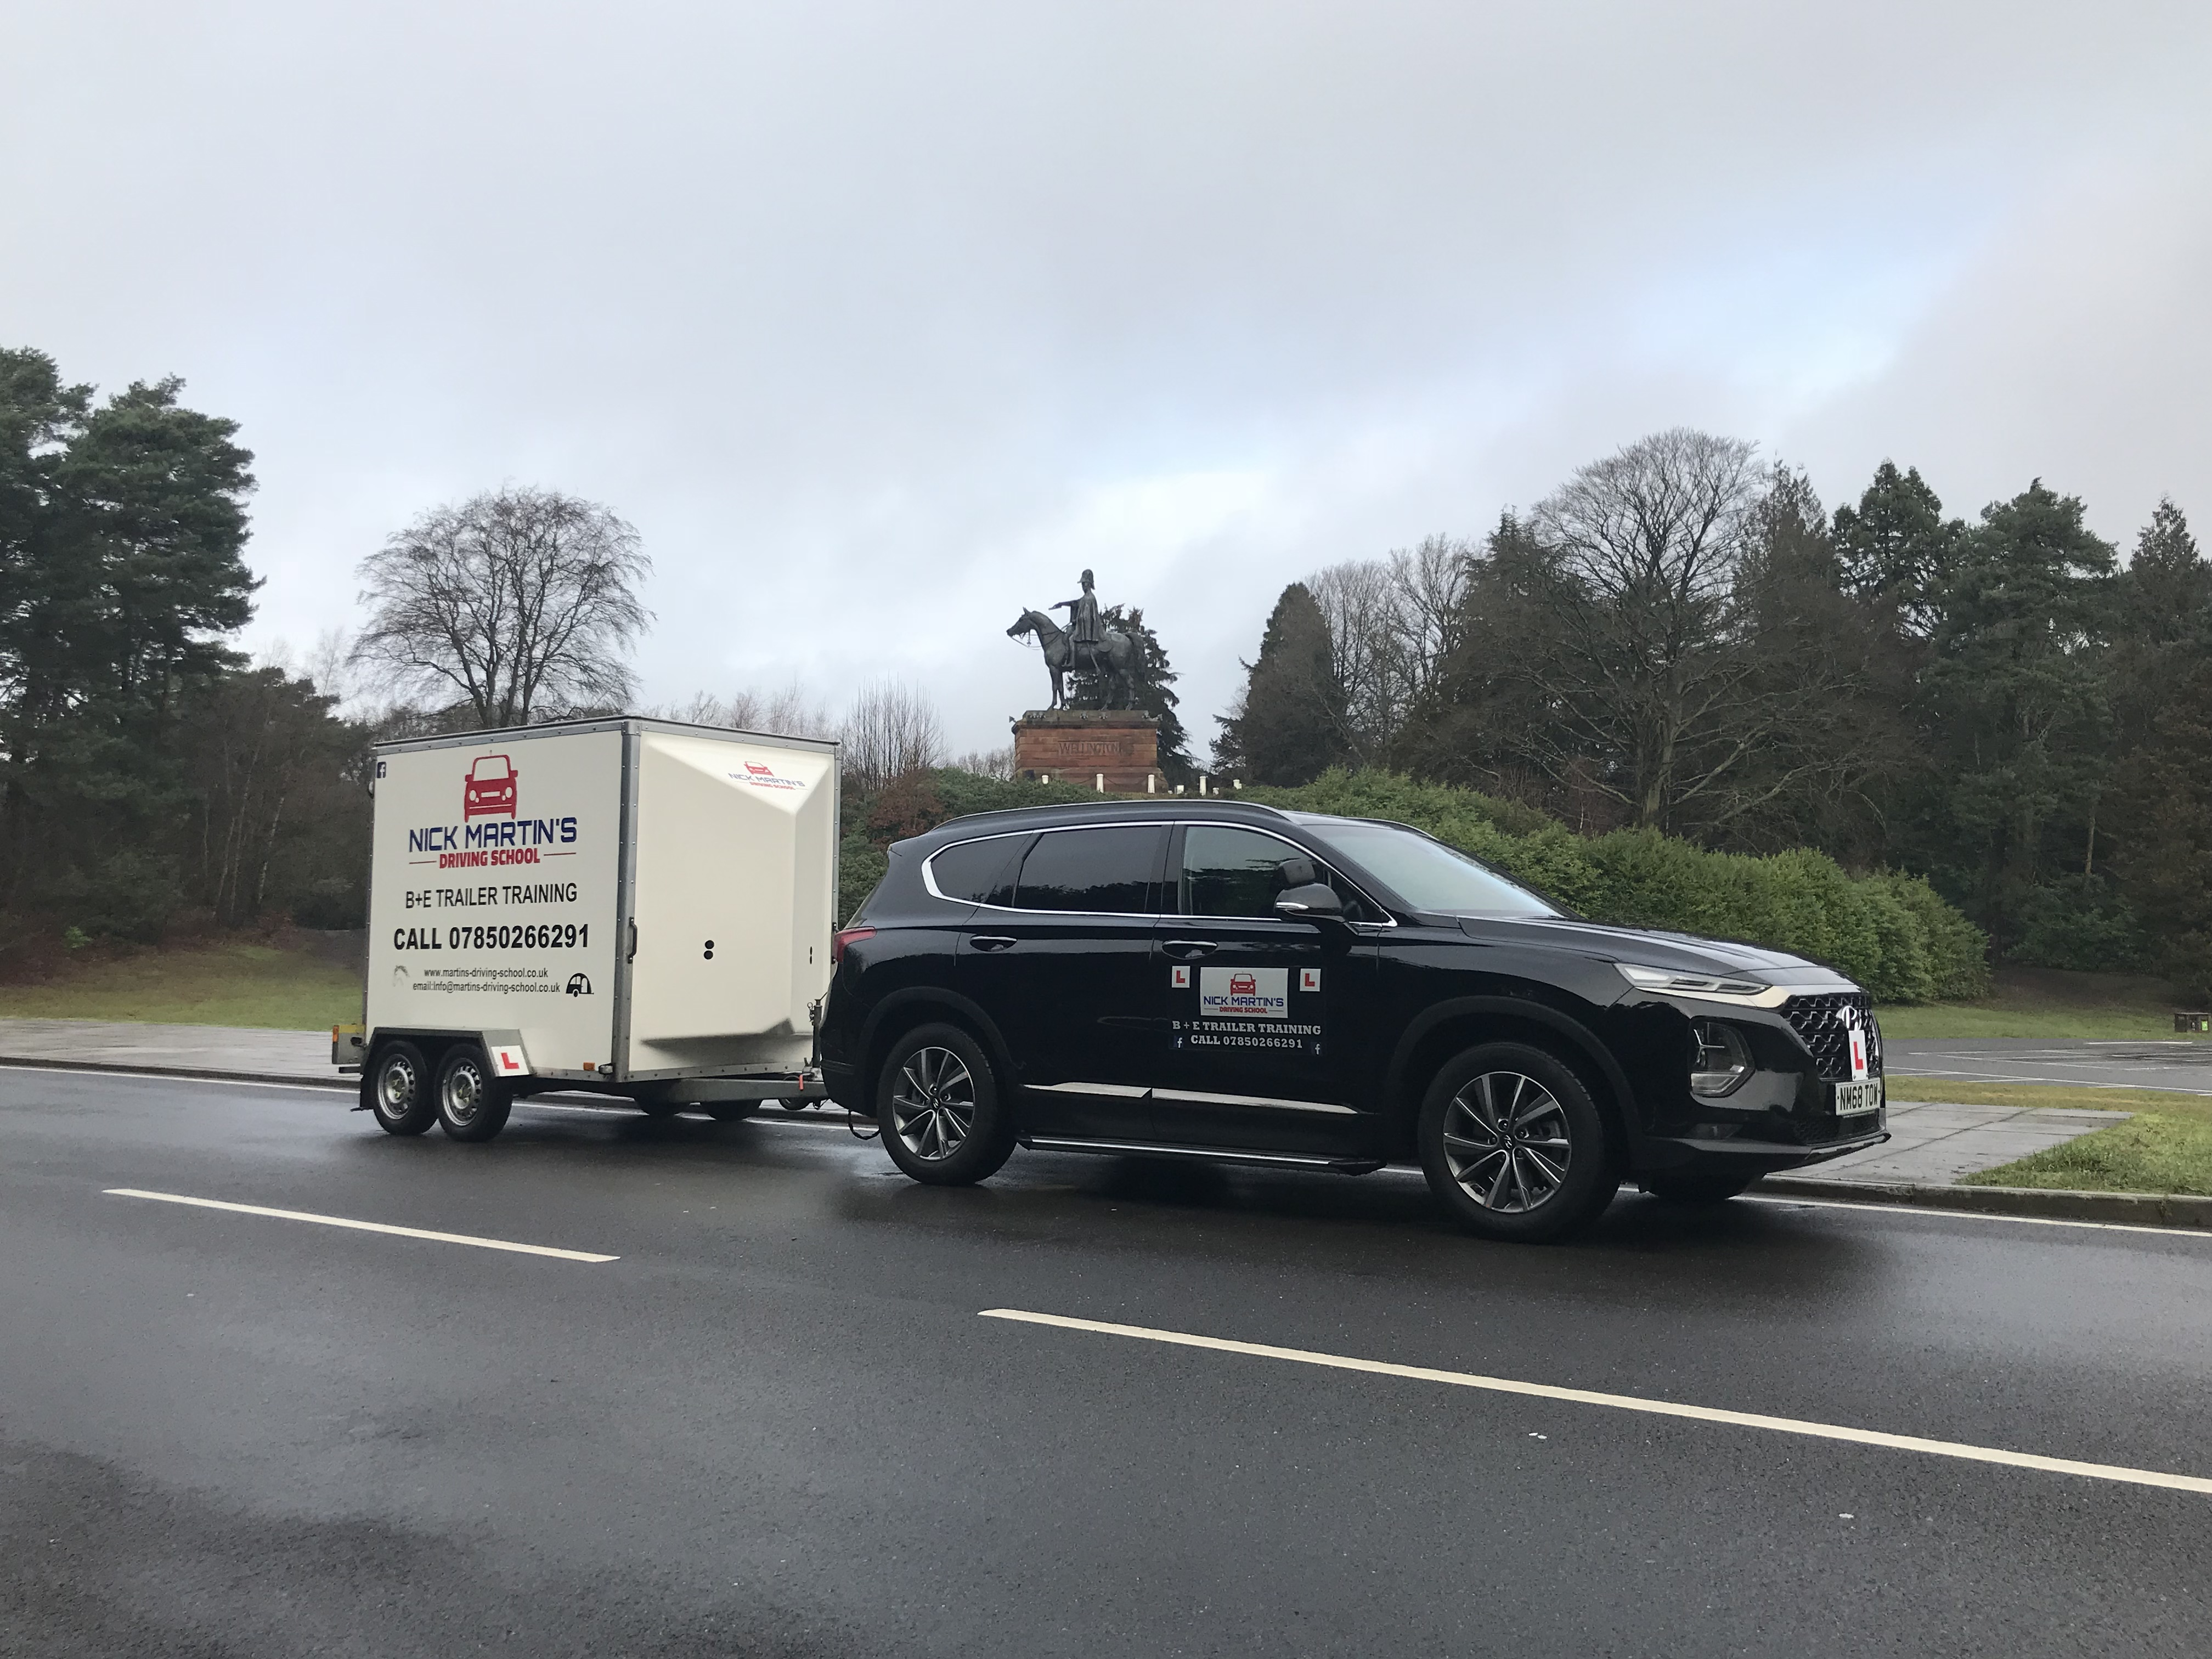 B+E Towing Courses in Guildford